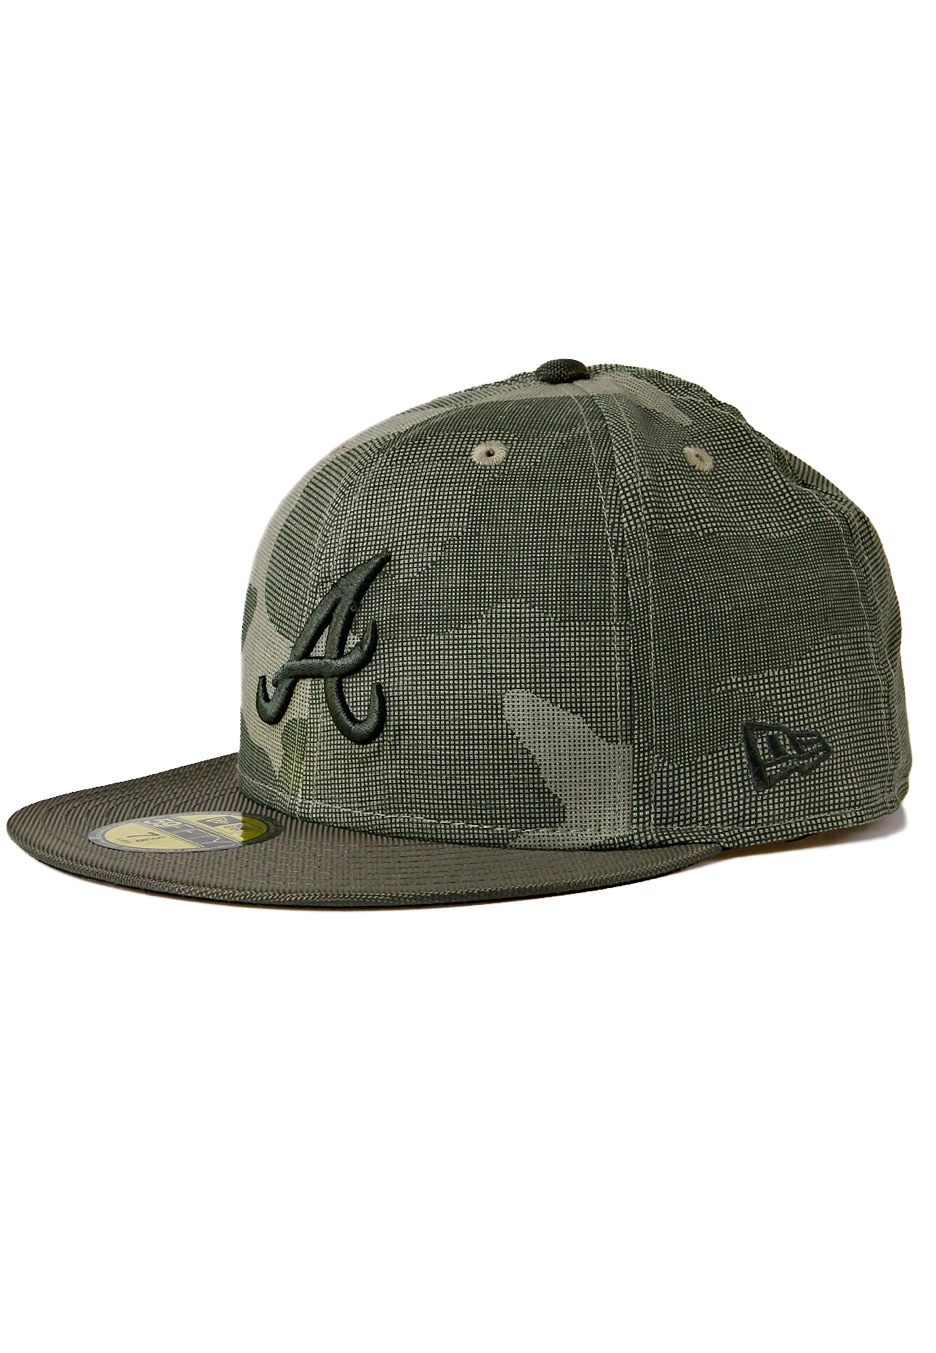 new era caps camouflage fitkid. Black Bedroom Furniture Sets. Home Design Ideas